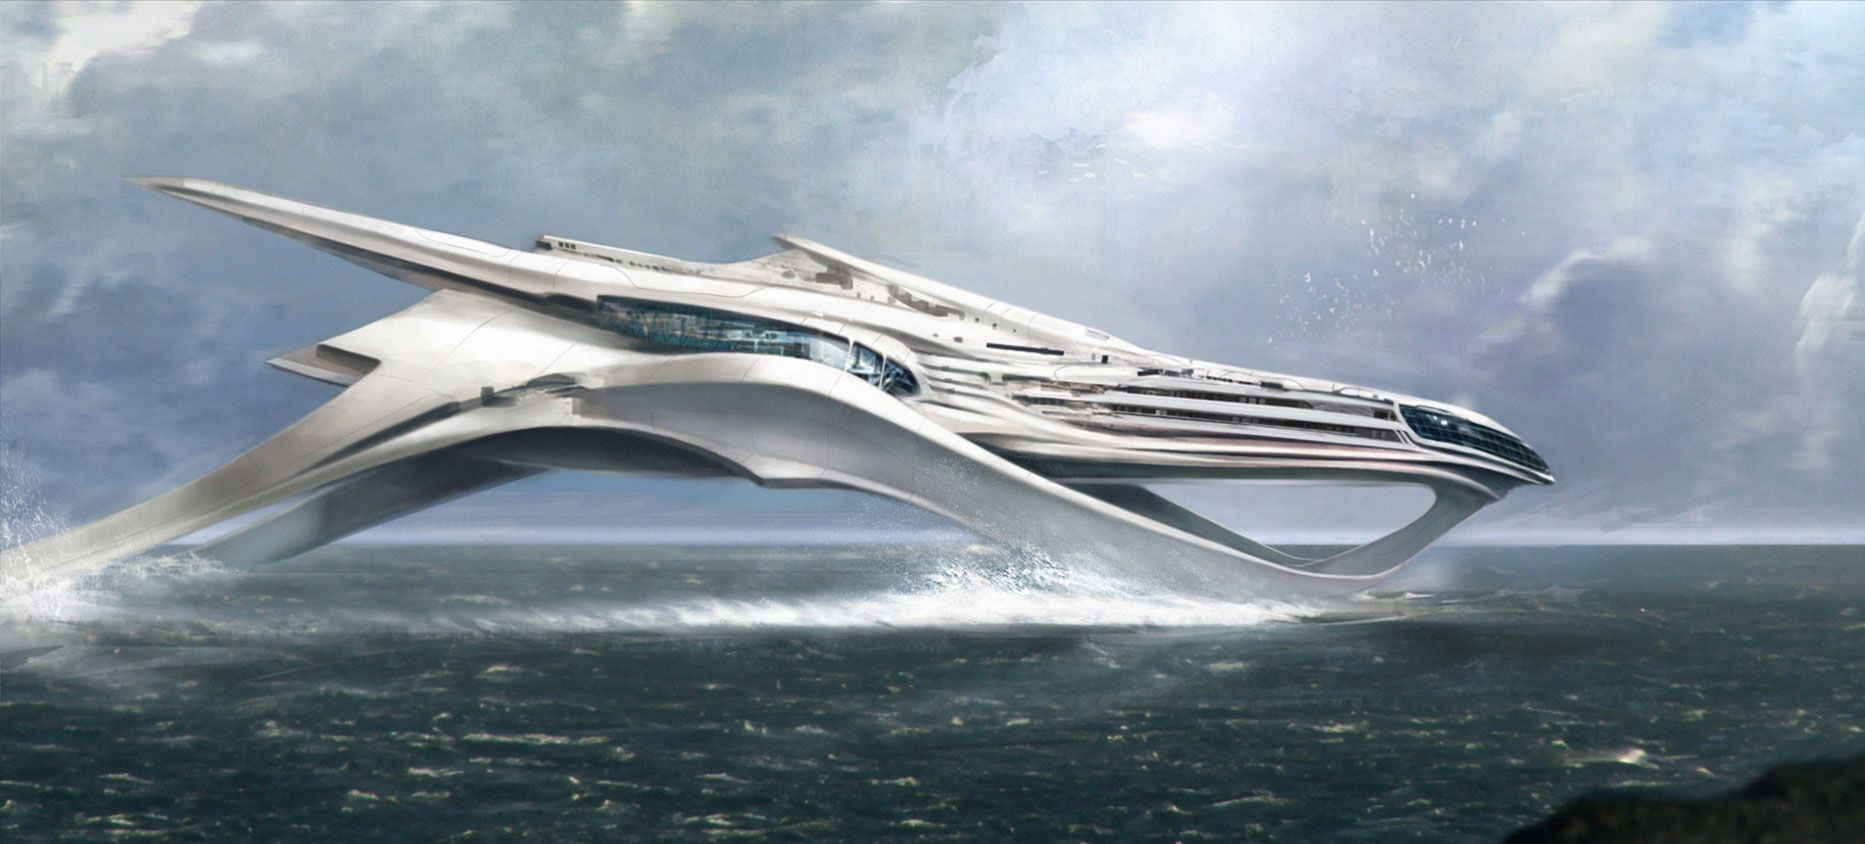 the futuristic ship from cloud atlas | Ocean Going Ships ...